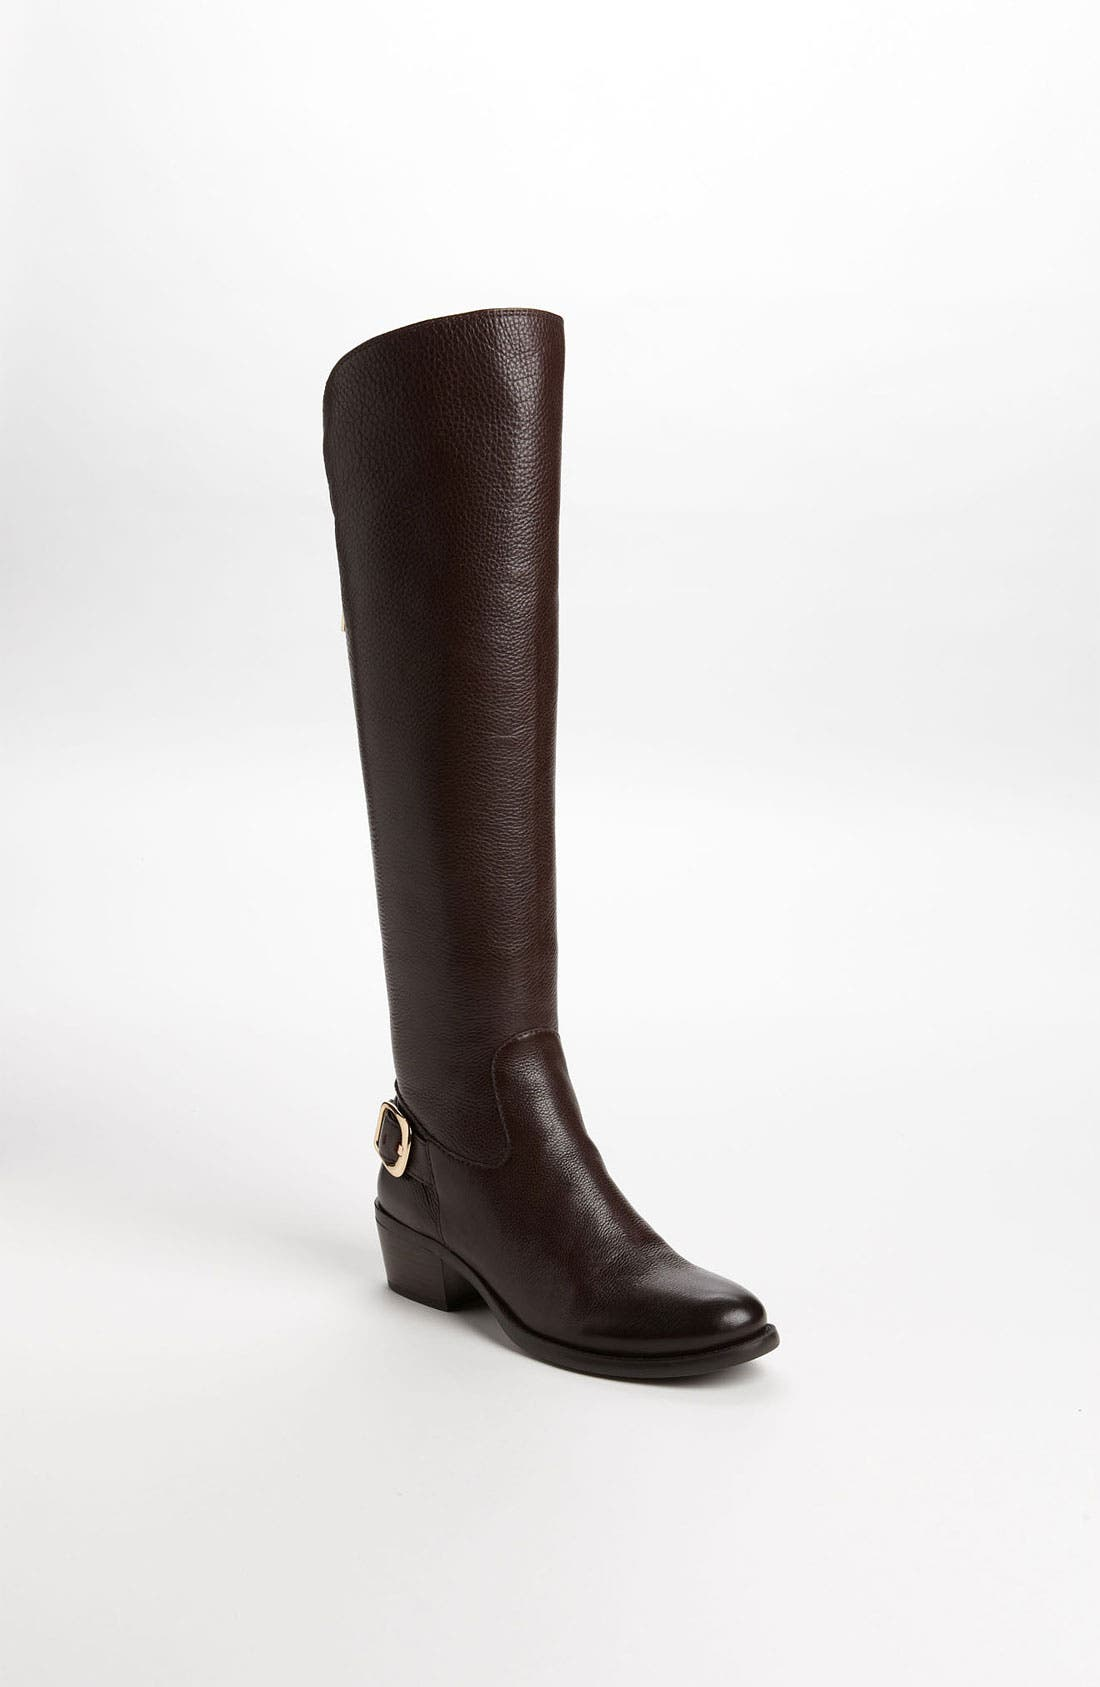 Main Image - Vince Camuto 'Beralta' Boot